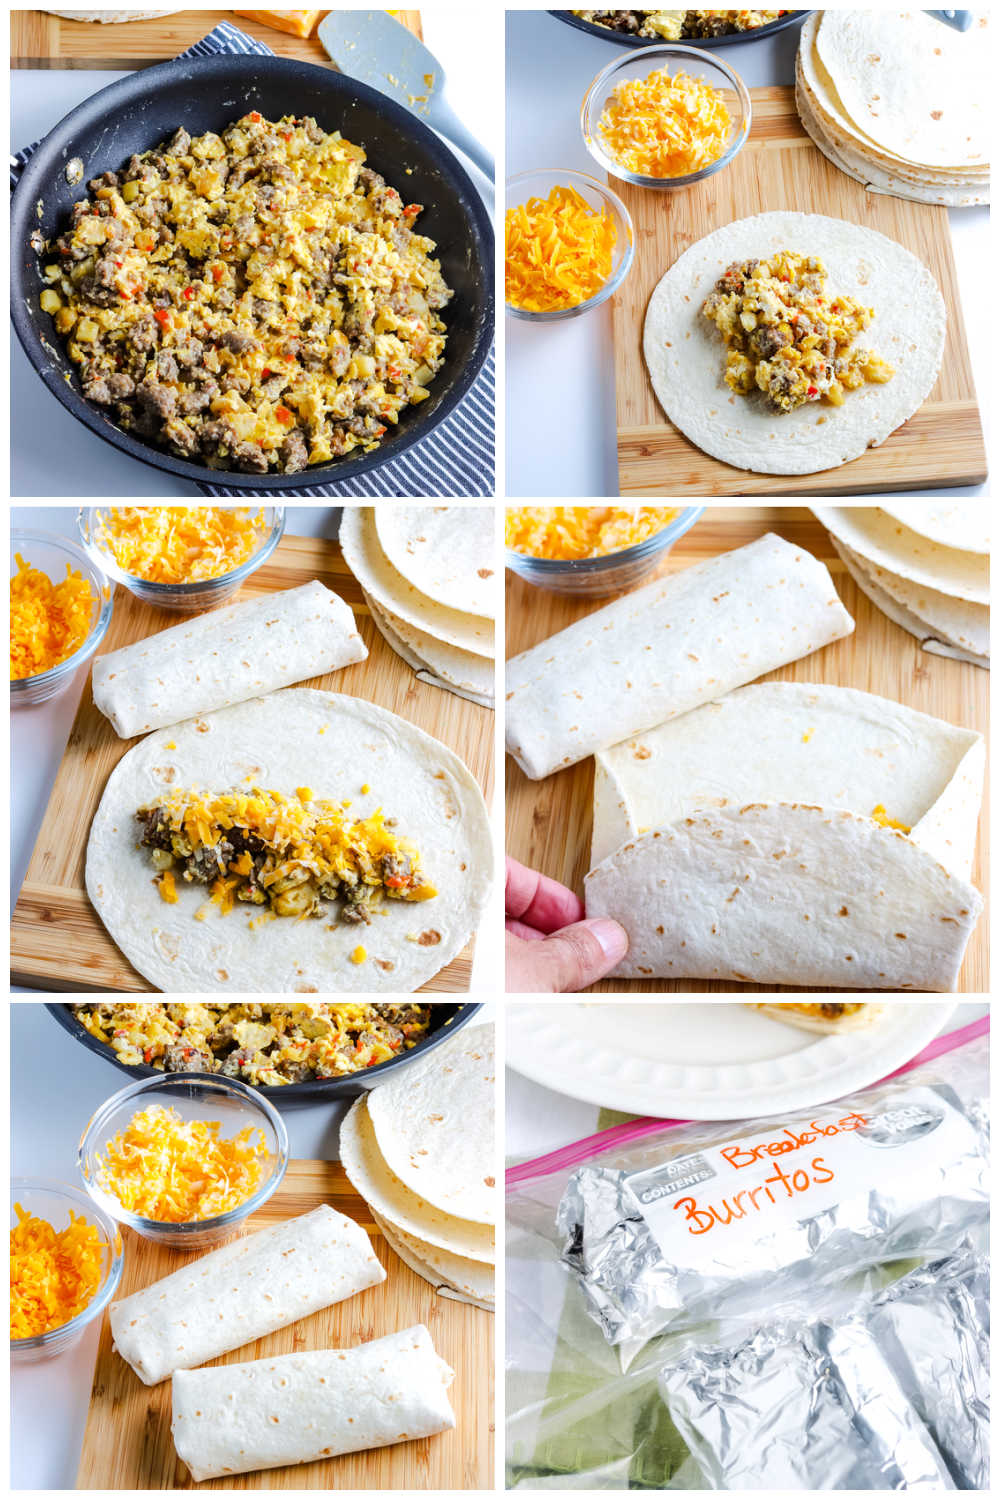 A picture collage of how to make this Breakfast Burrito recipe.